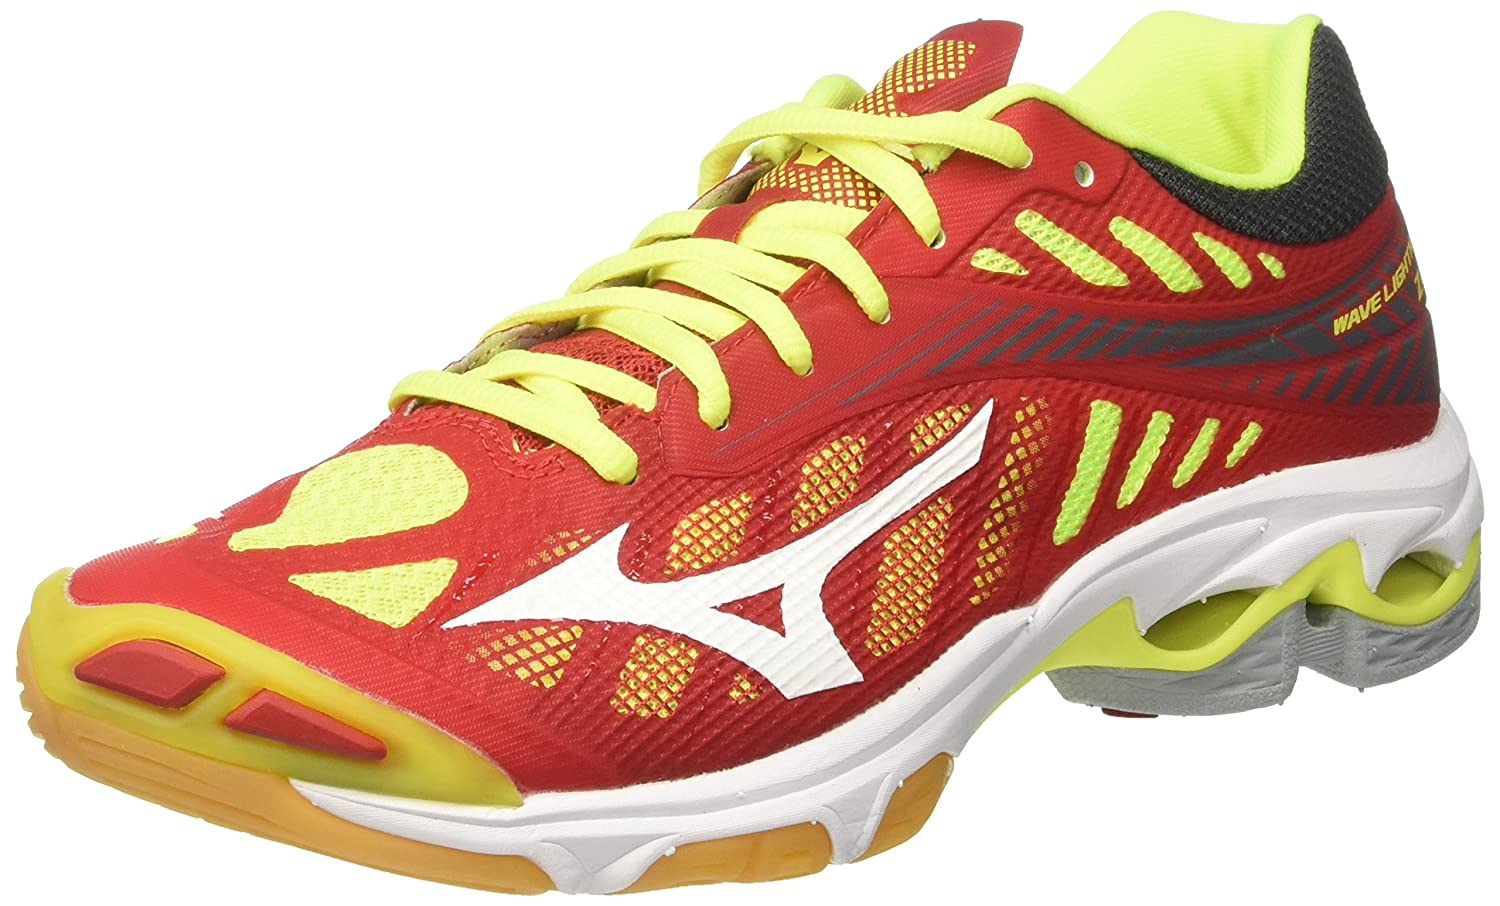 Mizuno Wave Lightning Z4, Zapatillas de Running para Hombre 42.5 EU|Multicolor (Marsred/White/Safetyyellow 01)